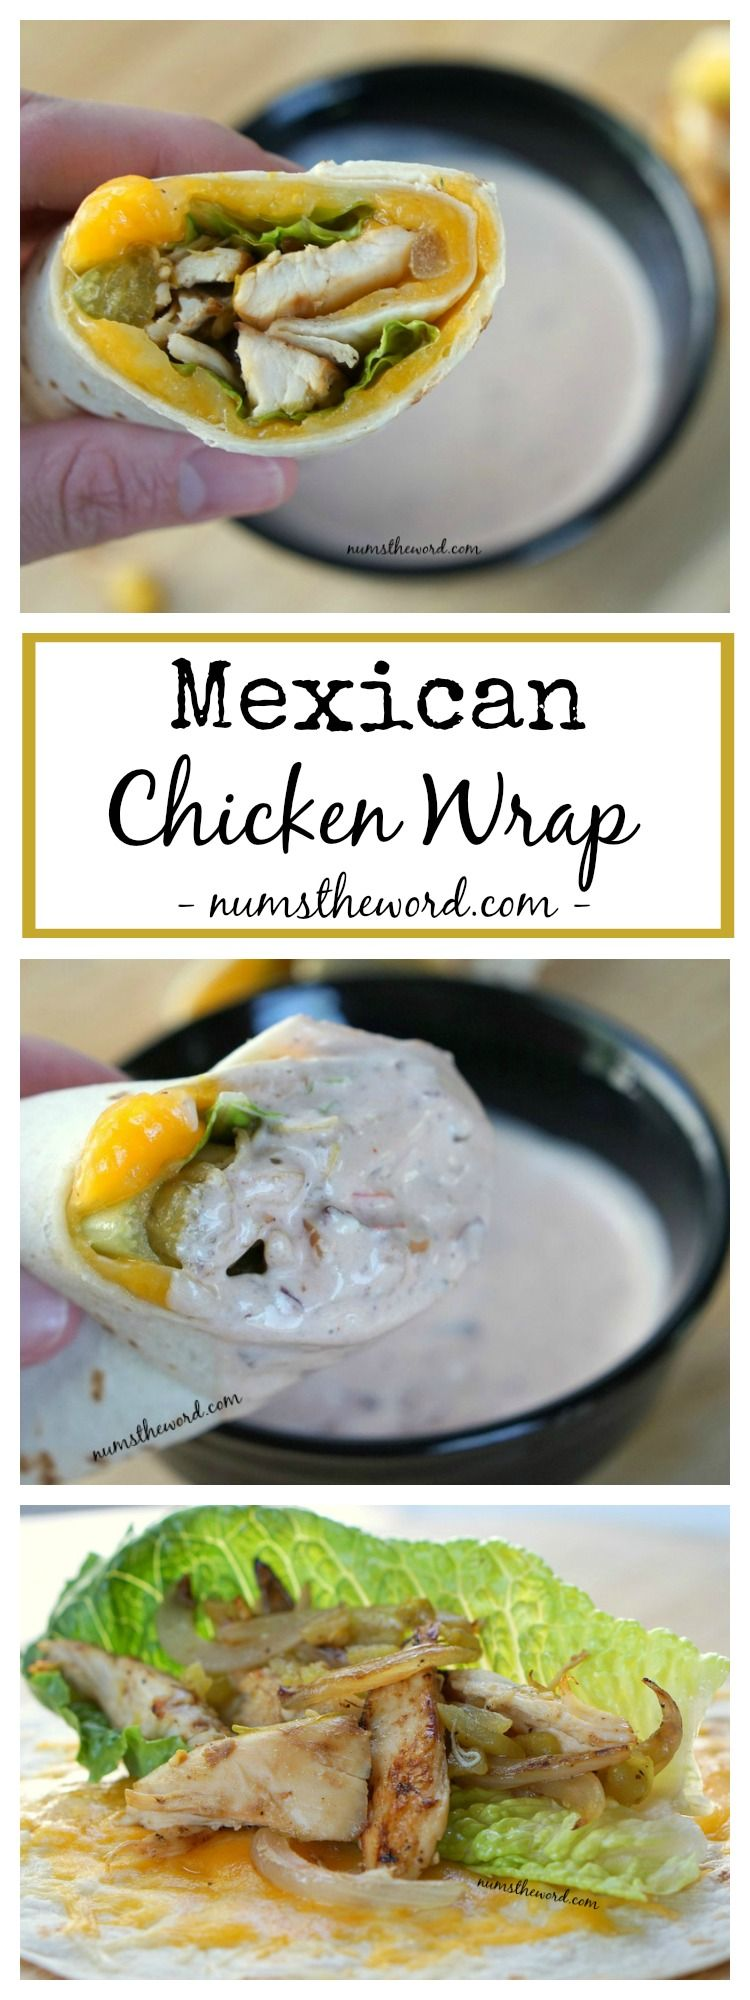 Mexican Chicken Wrap – a simple, quick toss together meal that is perfect for home, work or on-the-go. Packed with flavor and easy to make!